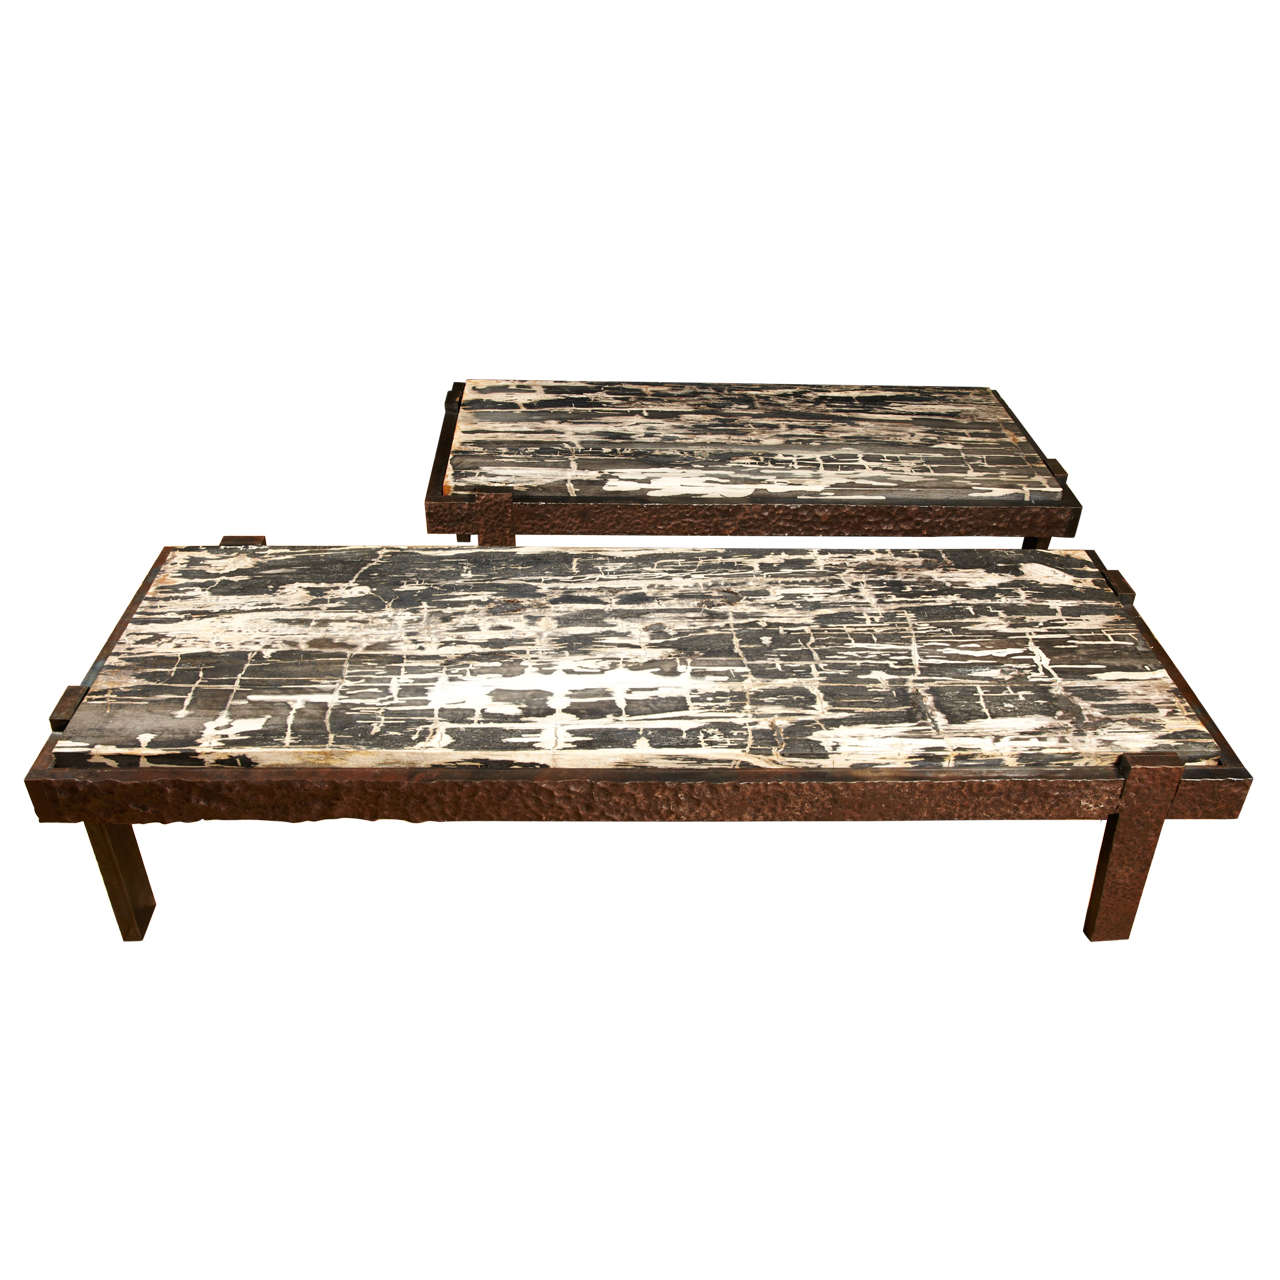 Pair Of Coffee Tables In Petrified Wood And Iron At 1stdibs